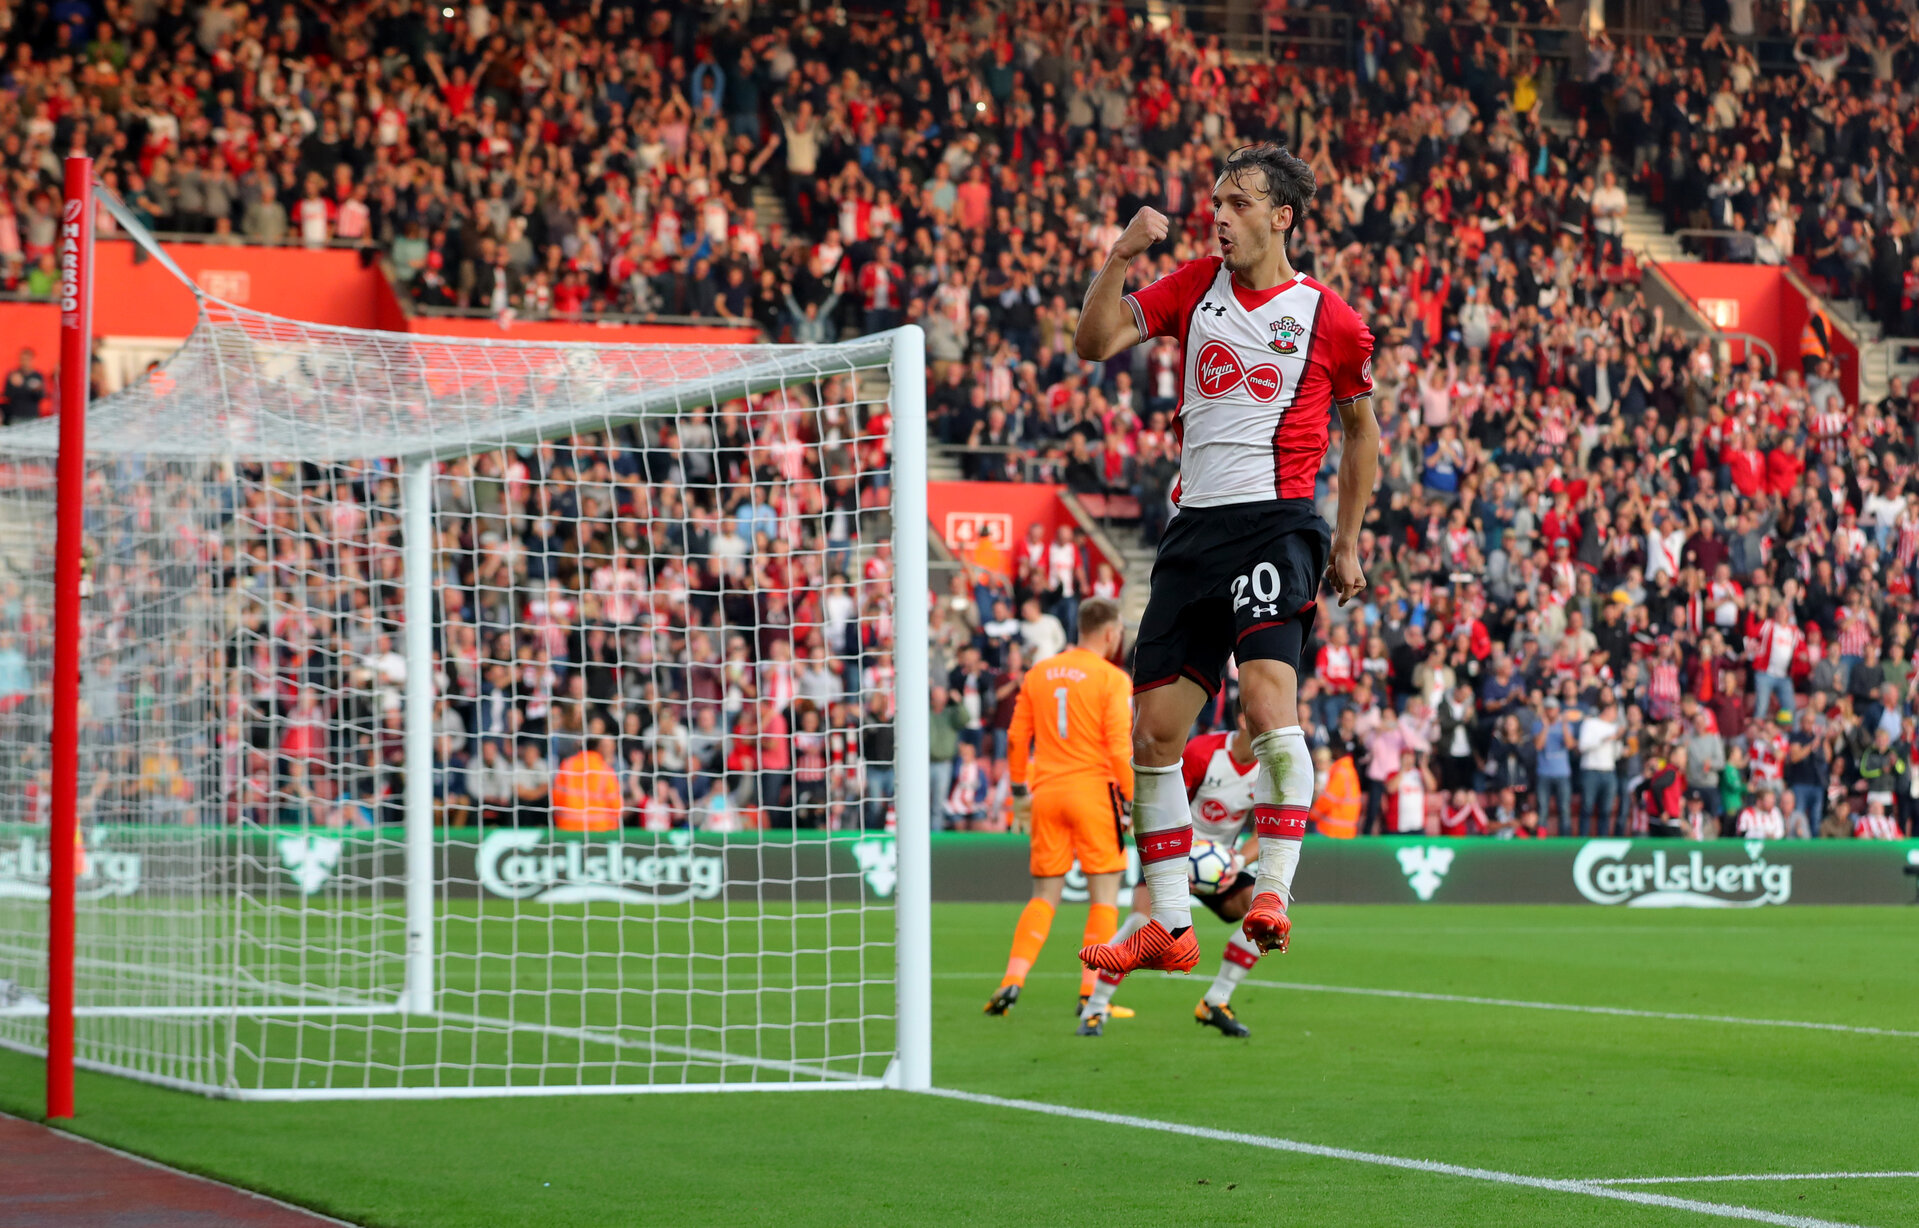 SOUTHAMPTON, ENGLAND - OCTOBER 15: Southampton's Manolo Gabbiaidini celebrates after equalising for the second time during the Premier League match between Southampton and Newcastle United at St Mary's Stadium on October 15, 2017 in Southampton, England. (Photo by Matt Watson/Southampton FC via Getty Images)